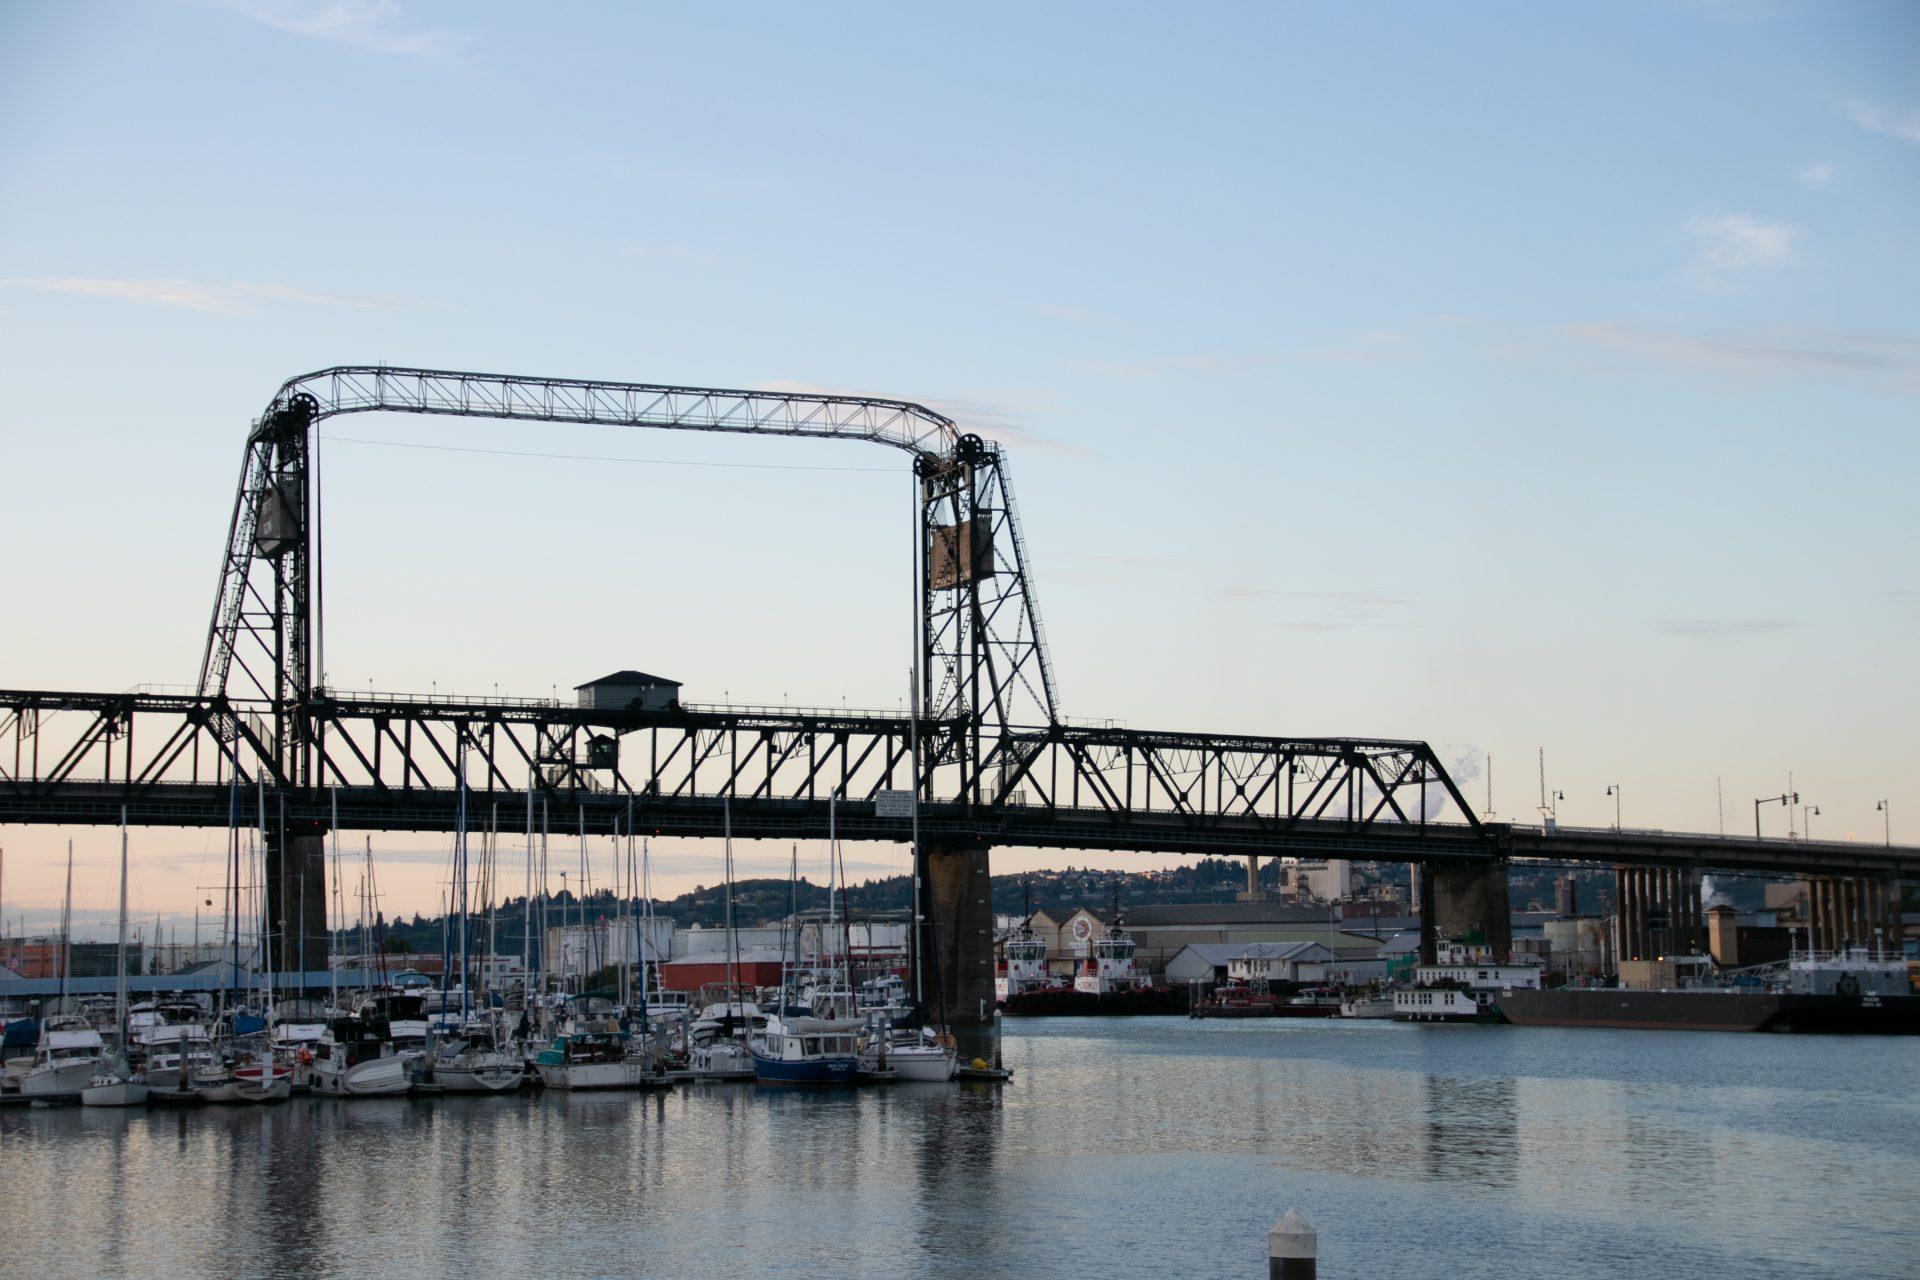 Bridge Near Boats In Harbor